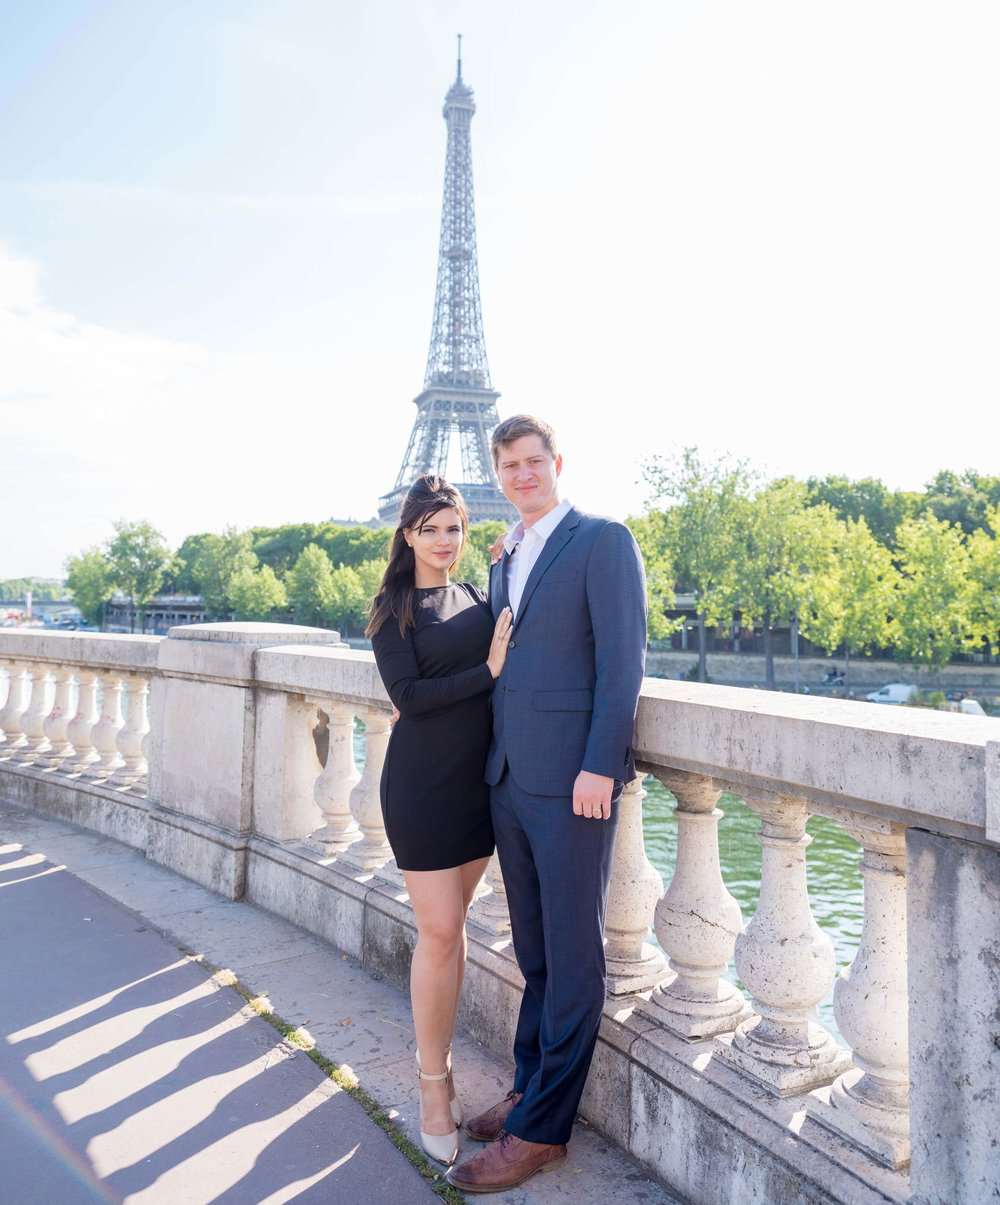 Couples - Couples celebrating an anniversary, engagement, honeymoon, birthday or just because!Capture amazing images of you as a couple at the Eiffel Tower, the Louvre, Notre Dame or one of the beautiful Paris parks!Packages start at just 195€!